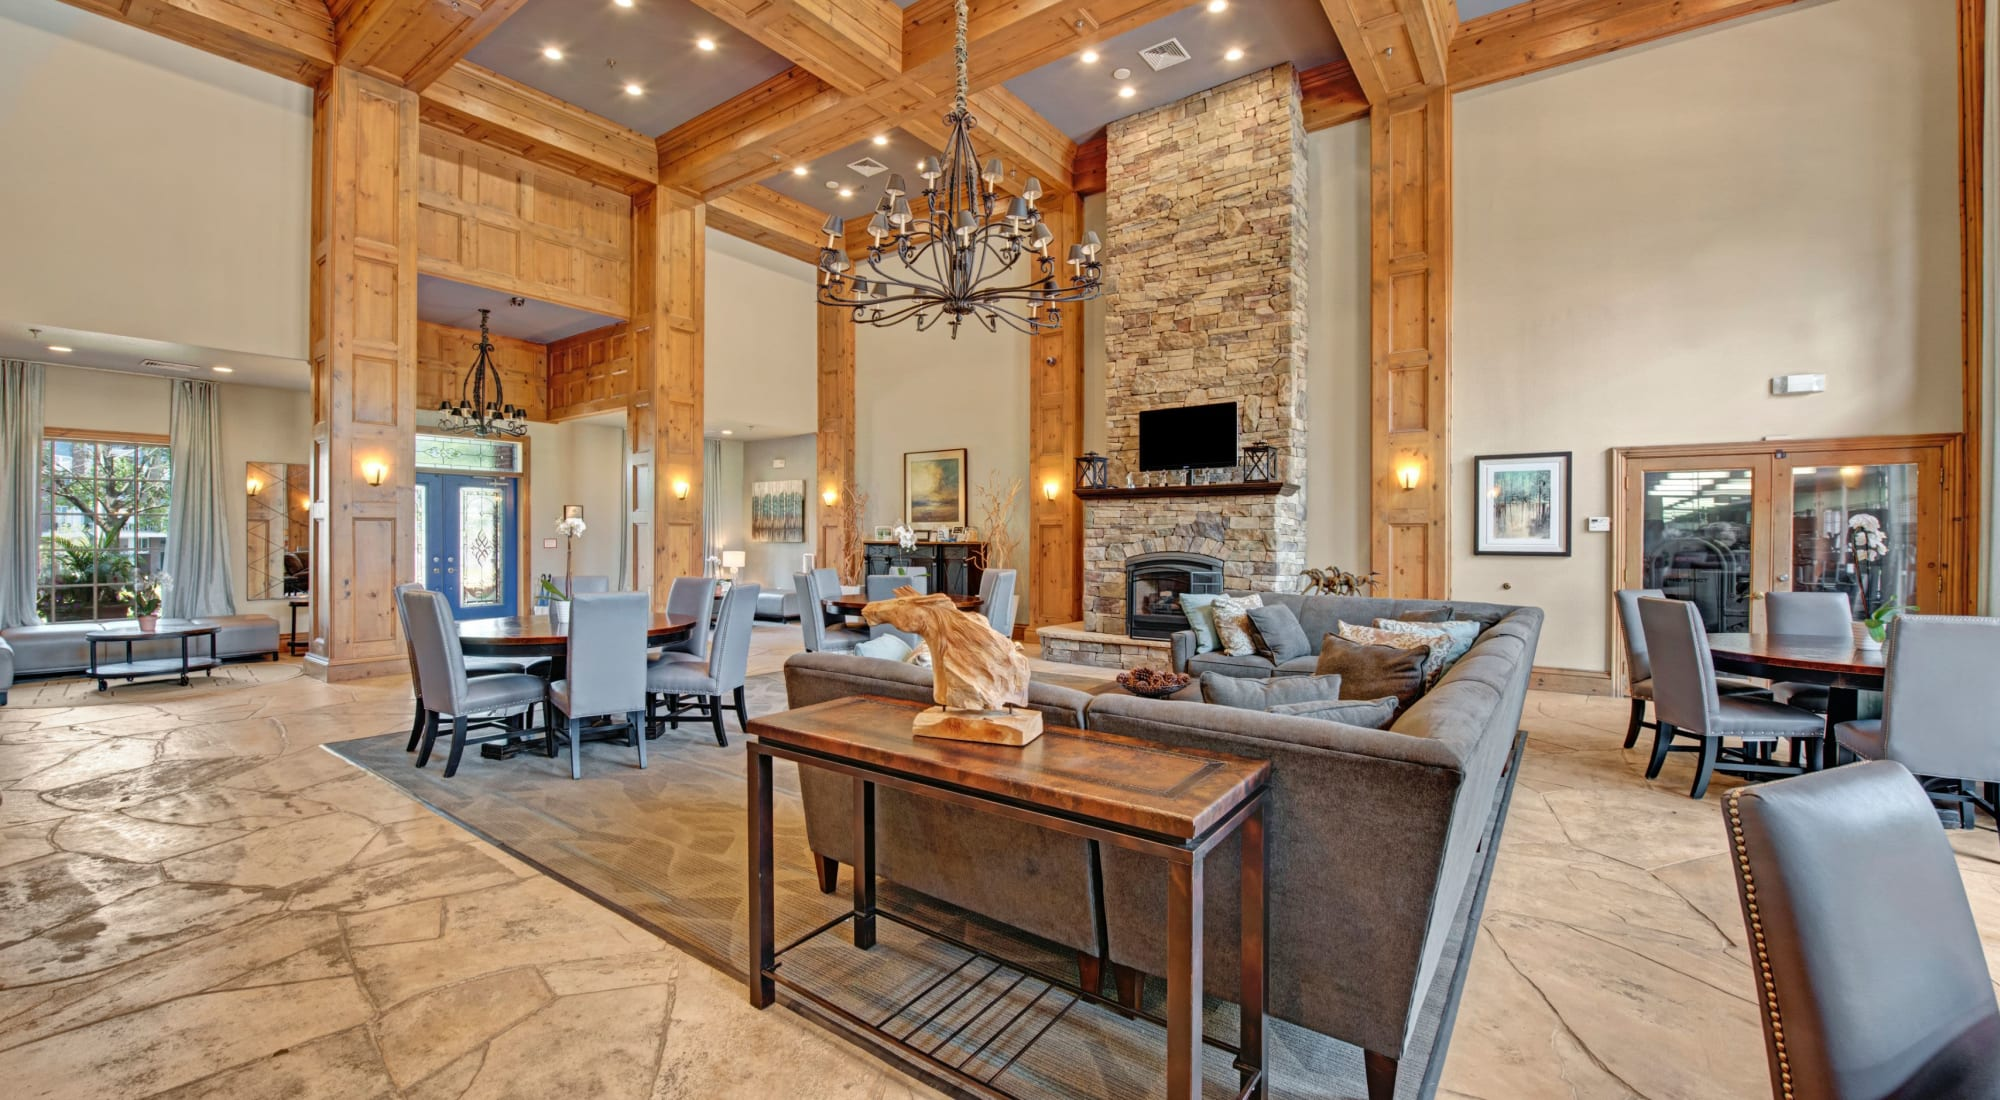 Schedule your tour of Woodway at Trinity Centre in Centreville, Virginia